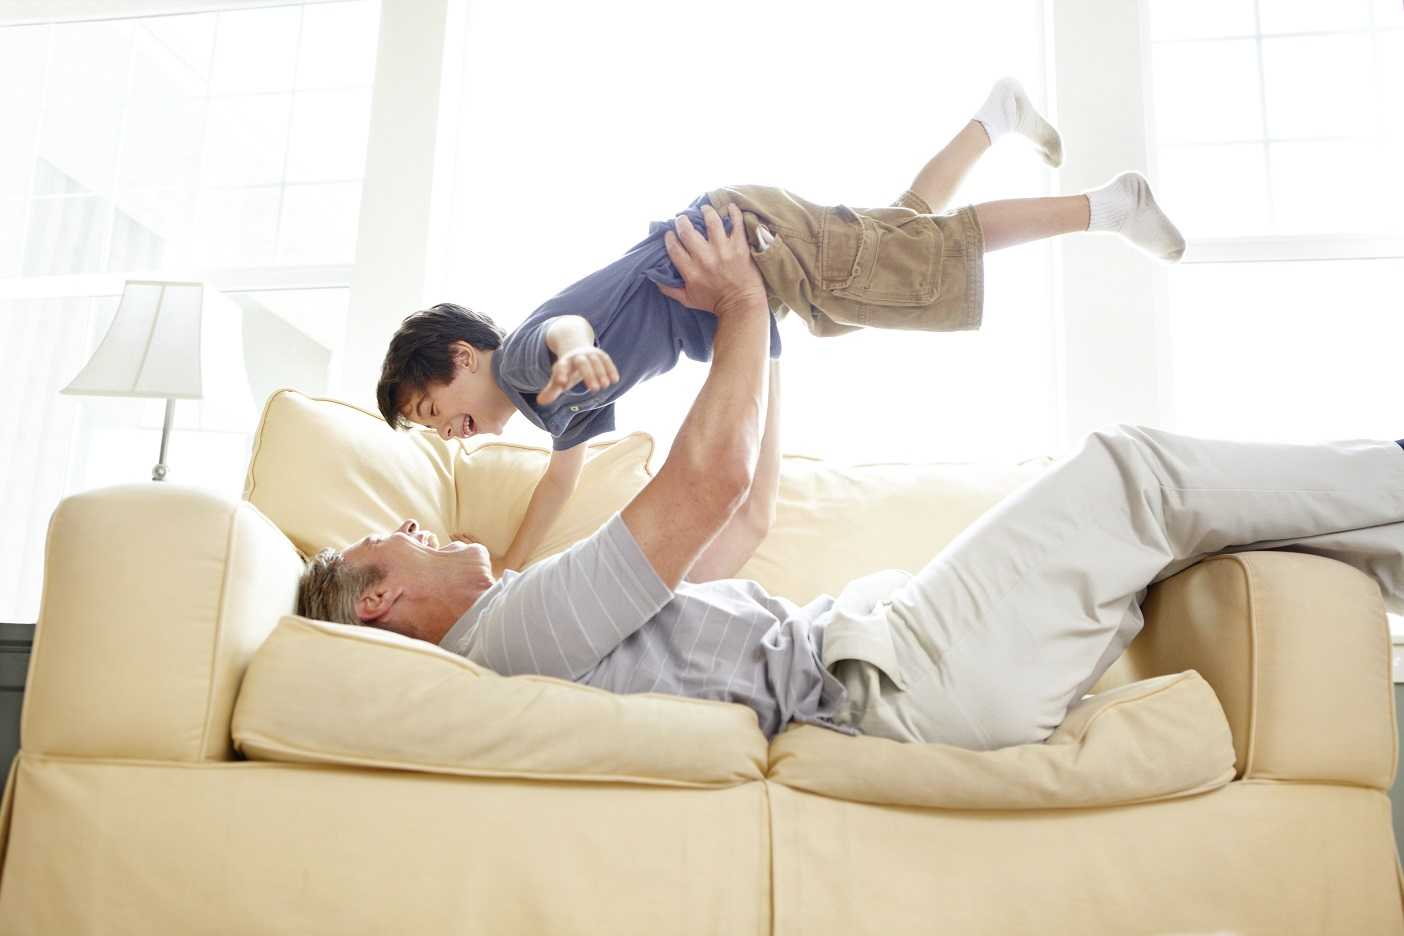 A father playfully throwing his son up into the air while lying on a sofa